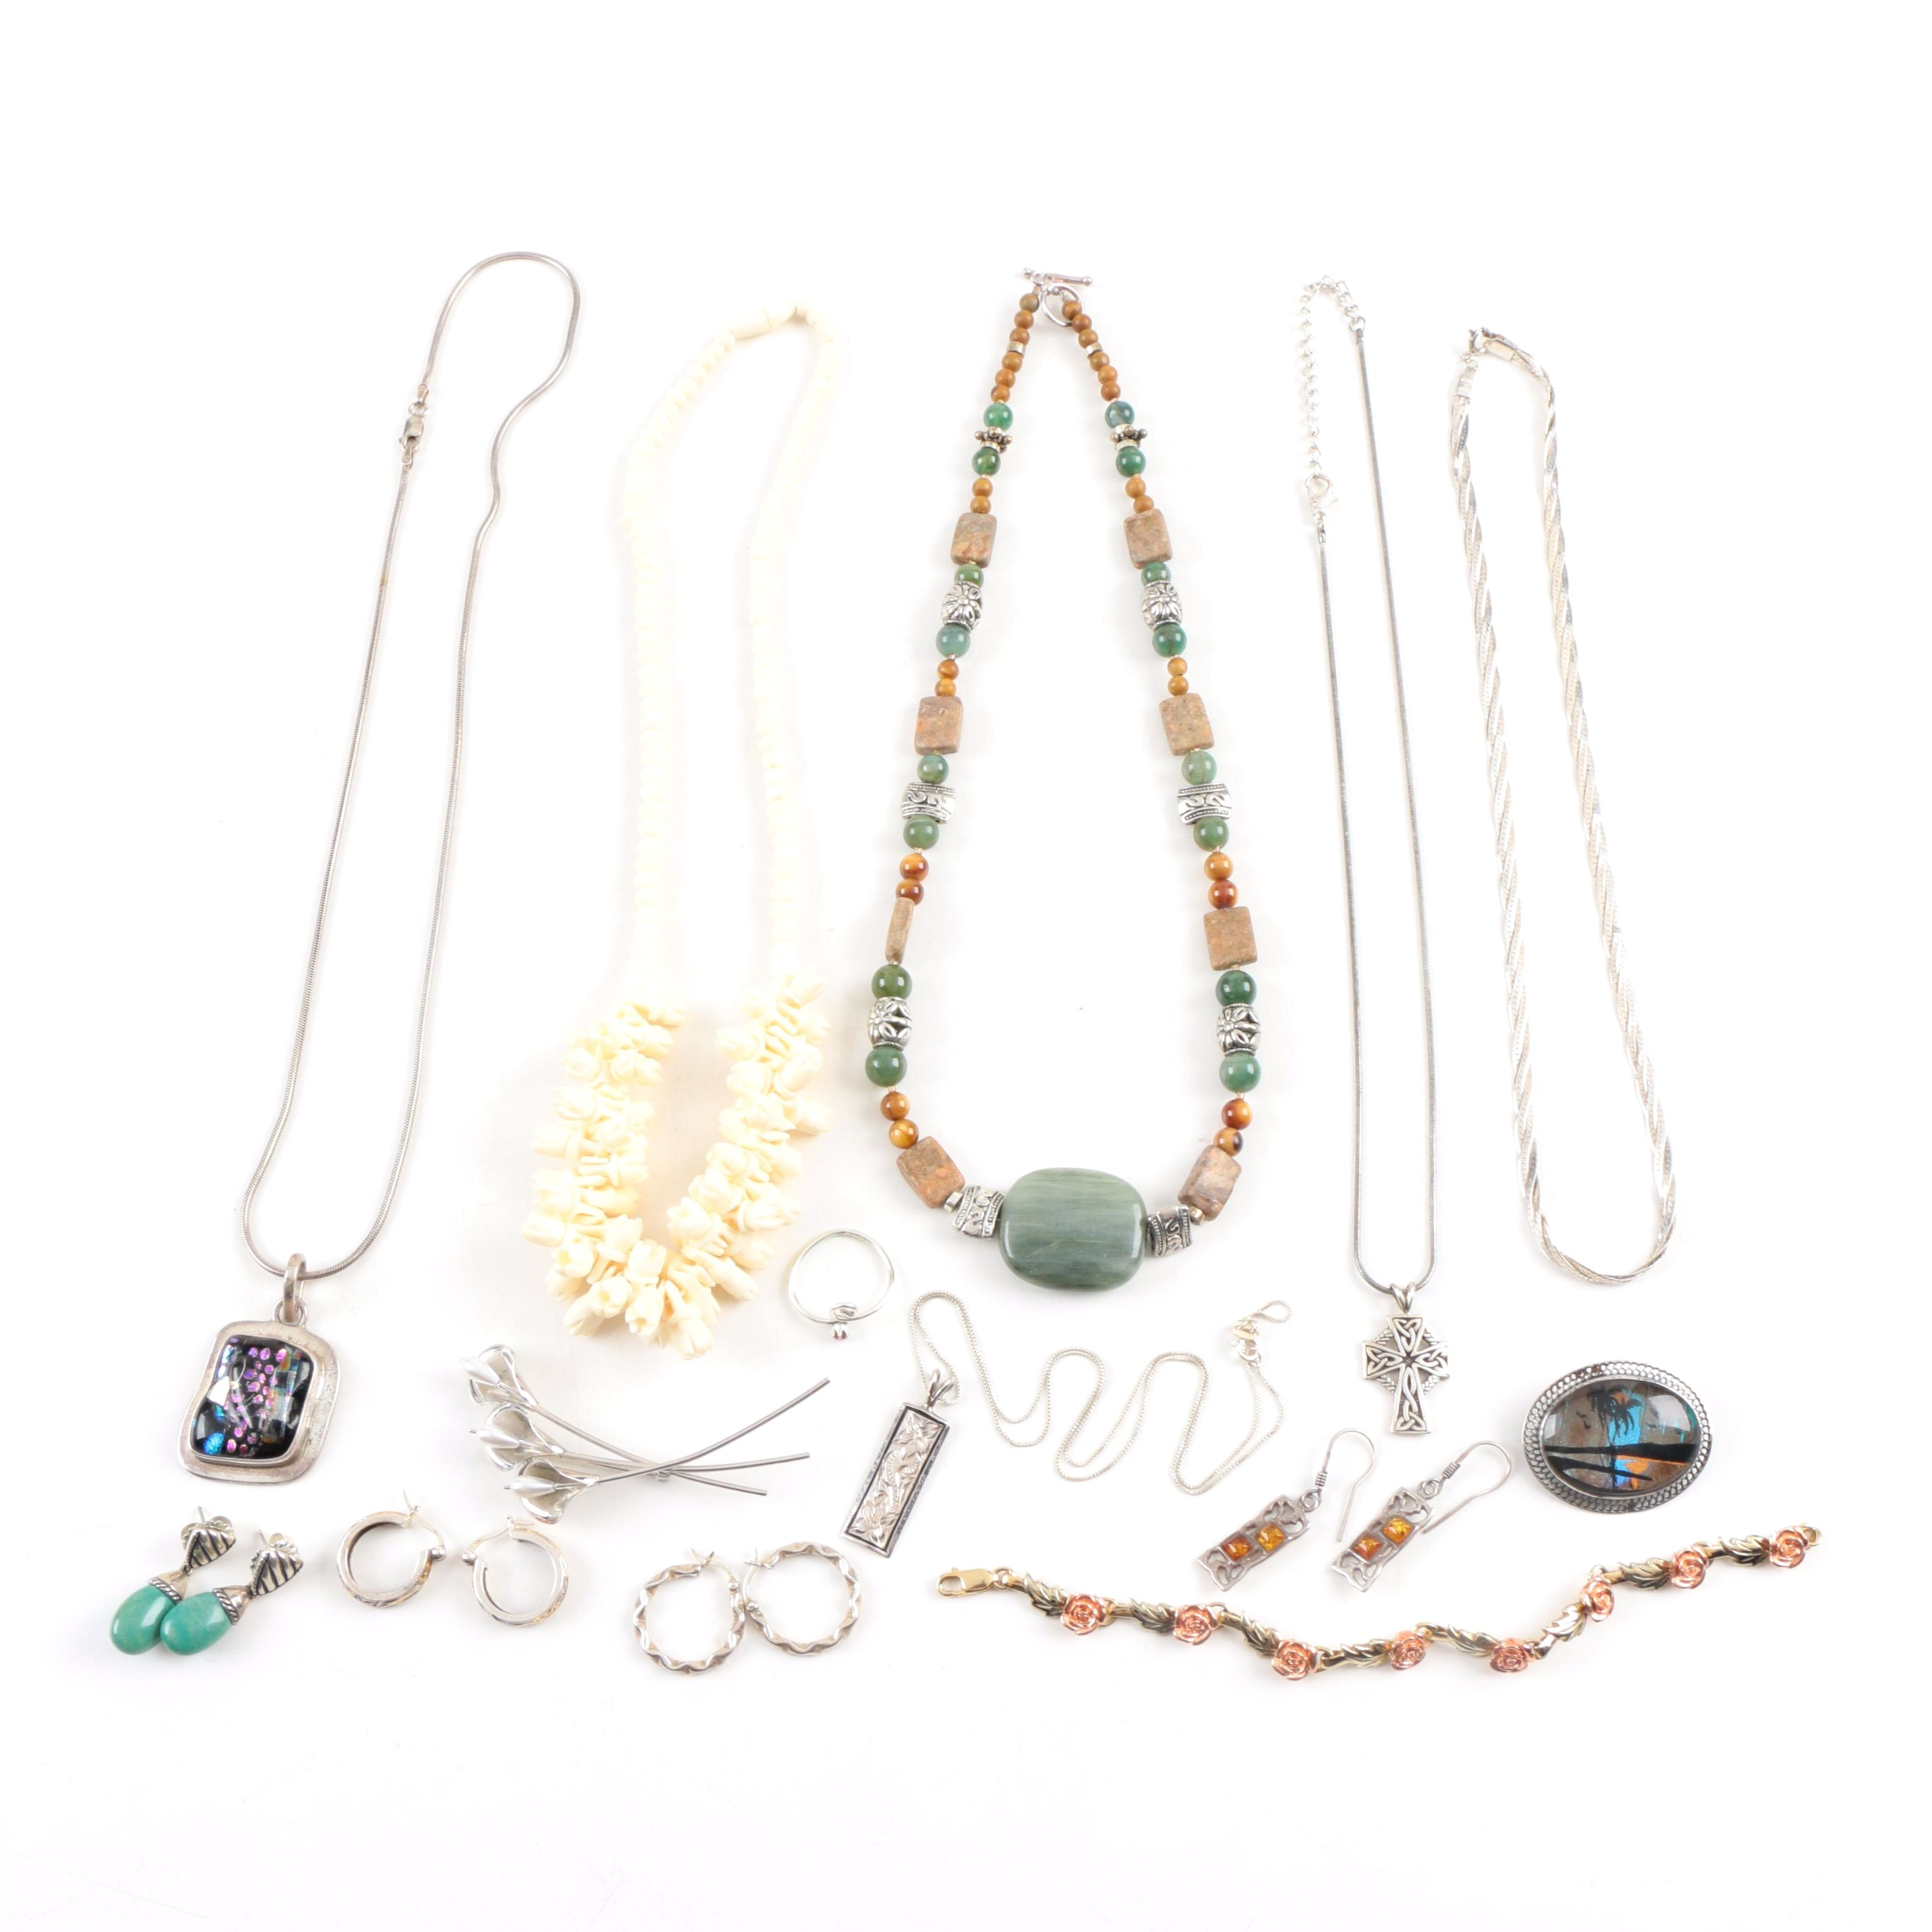 Sterling Silver Jewelry With Blue Morpho, Bone, Beau, Gemstones, and More